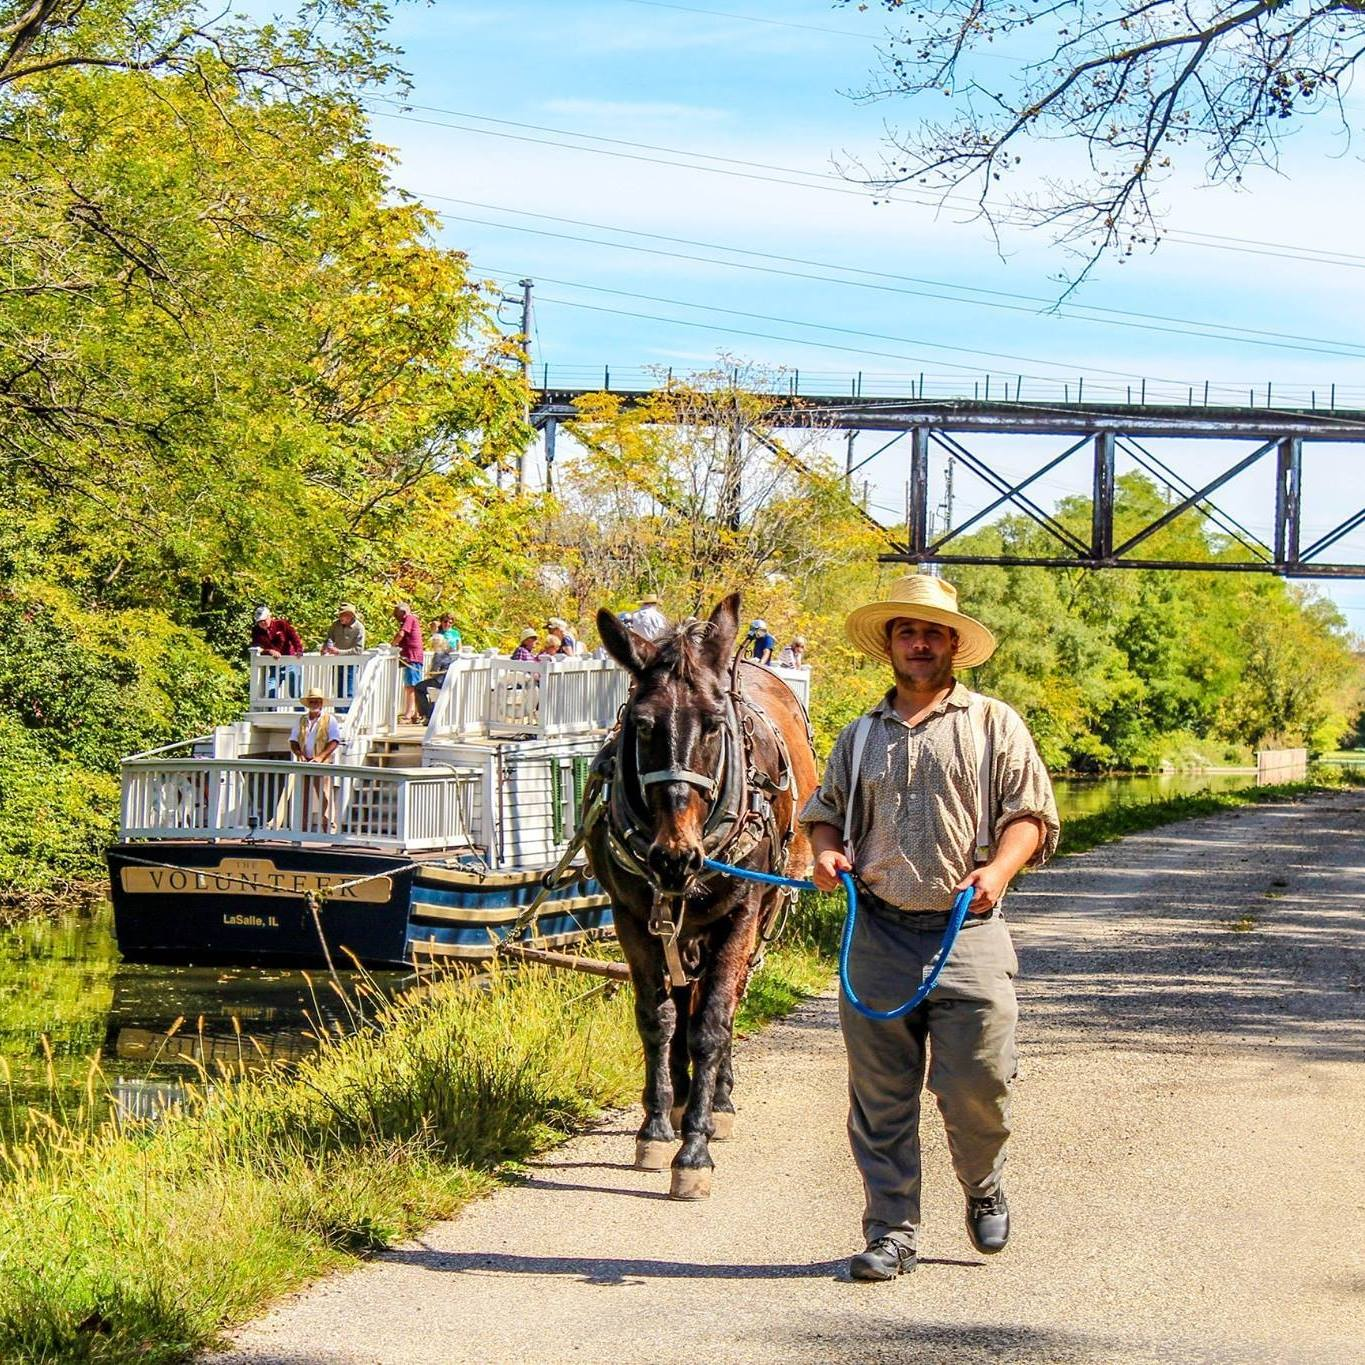 I&M Canal boat and a guy walking a mule long the river